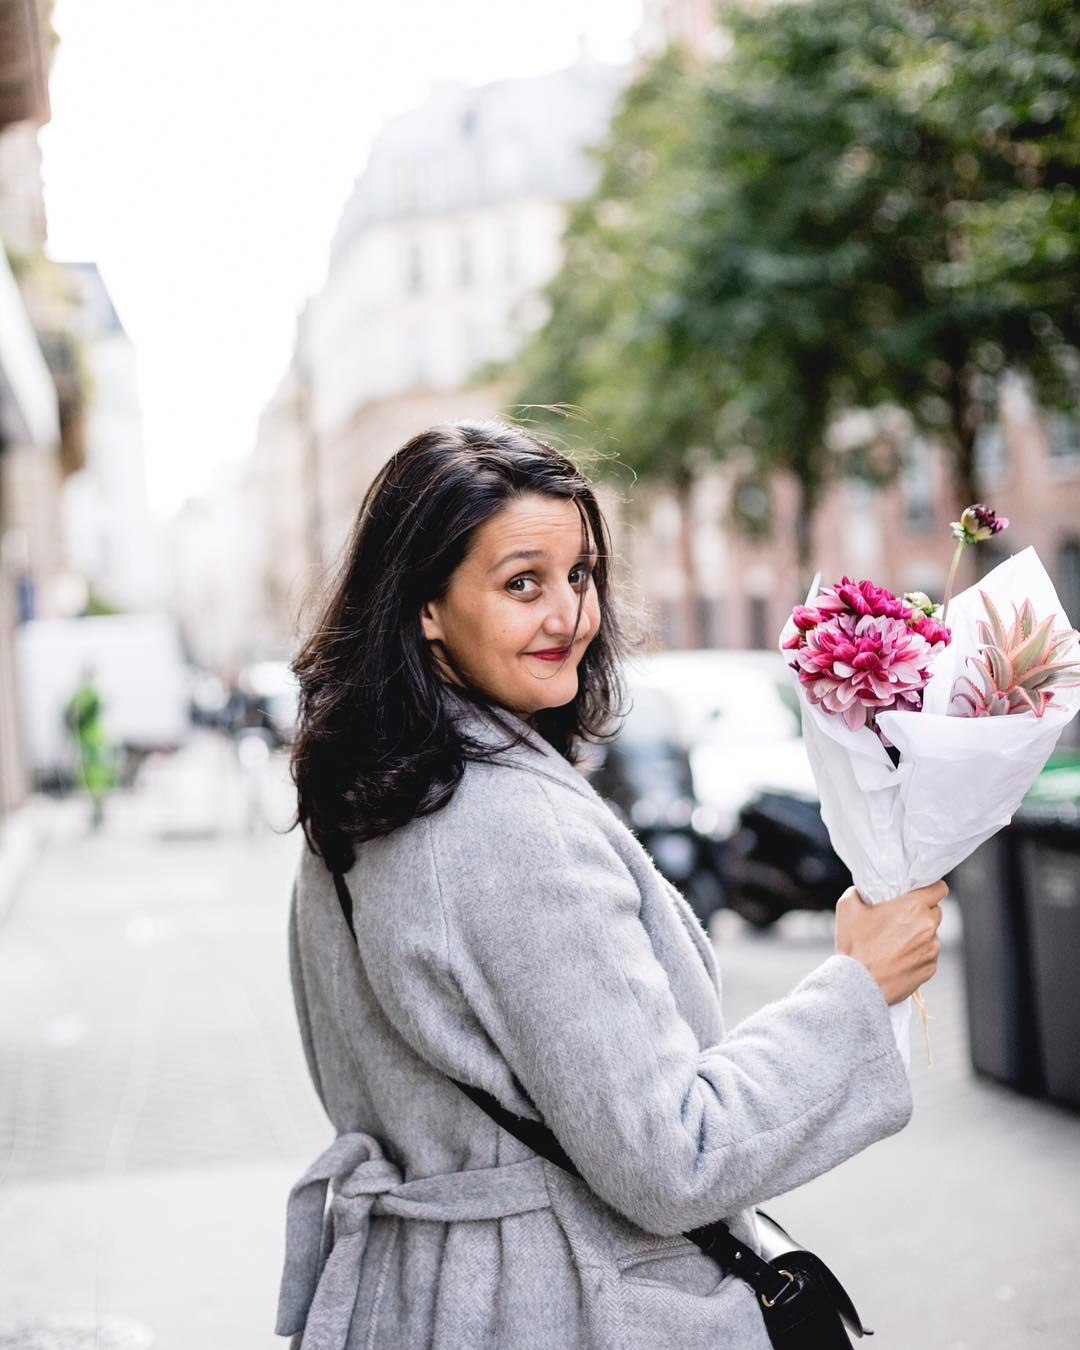 Elodie Love aka Madame Love - I am giddy with excitement that Elodie will be our Floral stylist for our retreat. Her florals are sensual, wild and feminine, they feel effortless even when we know they are not. She will be dressing all of our workshops with foraged winter flowers and foliage to make every moment even more beautiful and photogenic! Elodie will also host a floral masterclass as part of our retreat.Elodie is a flower blogger and has been writing her charming and wildly popular flower blog, madame love, since 2012. She is both a gifted floral stylist and floral photographer and will able to share all her tips for creating florals for your food & lifestyle photography, and how to best shoot your floral work.Elodie is also a contributor to well-known blogs such as the TULIPINA or STYLED CANVAS and has worked for many magazines including SISTERMAG. Her work has been published in two books, BEST OF INTERIOR BLOGS and FLOWER LADIES.To learn and explore more of Elodie and her creative vision please visit her Instagram and her website here.Photo credit for portrait Ling Kohr